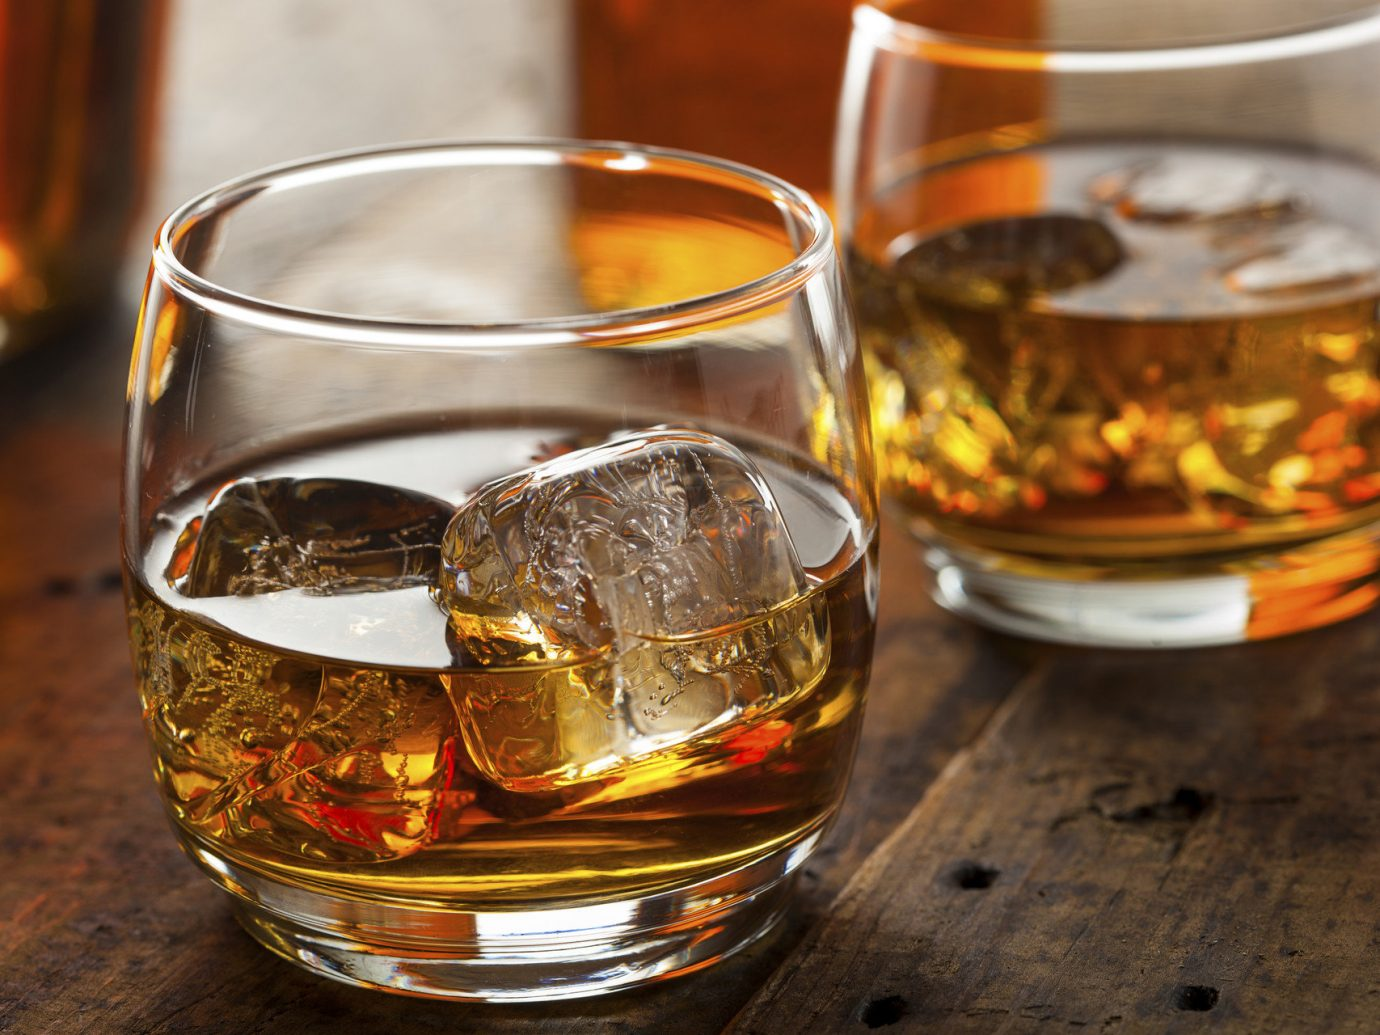 Food + Drink table cup container distilled beverage Drink alcoholic beverage glass sazerac whisky alcohol negroni old fashioned